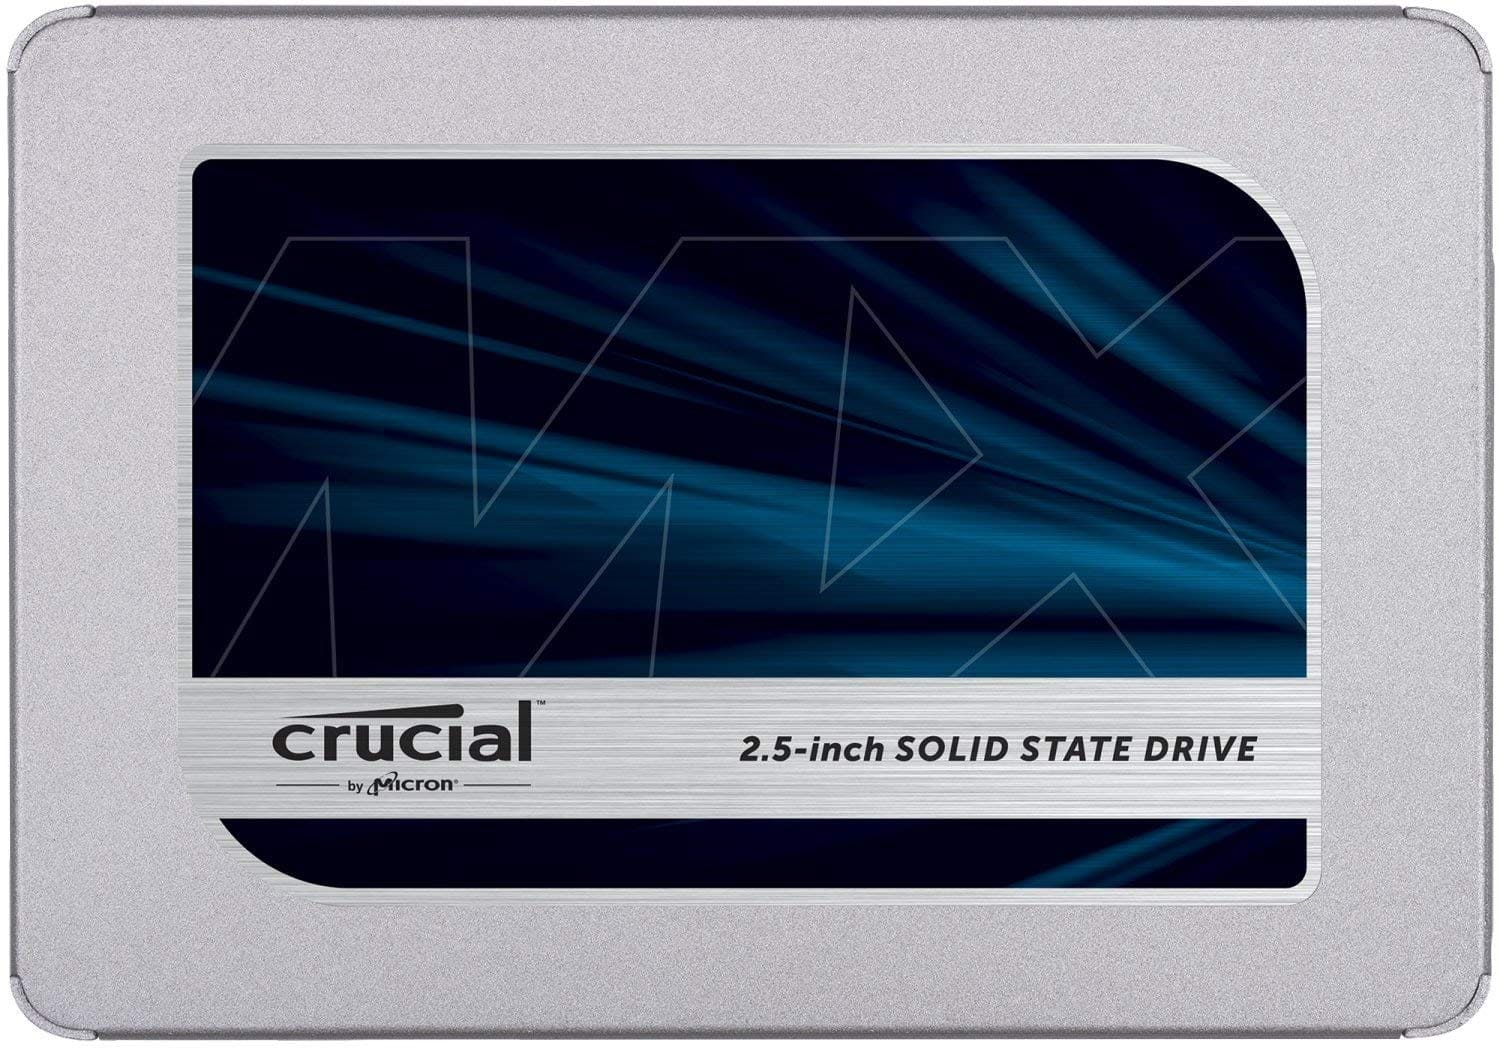 Crucial MX500 500GB SATA SSD for Amazon Prime Credit Card Users $46.75